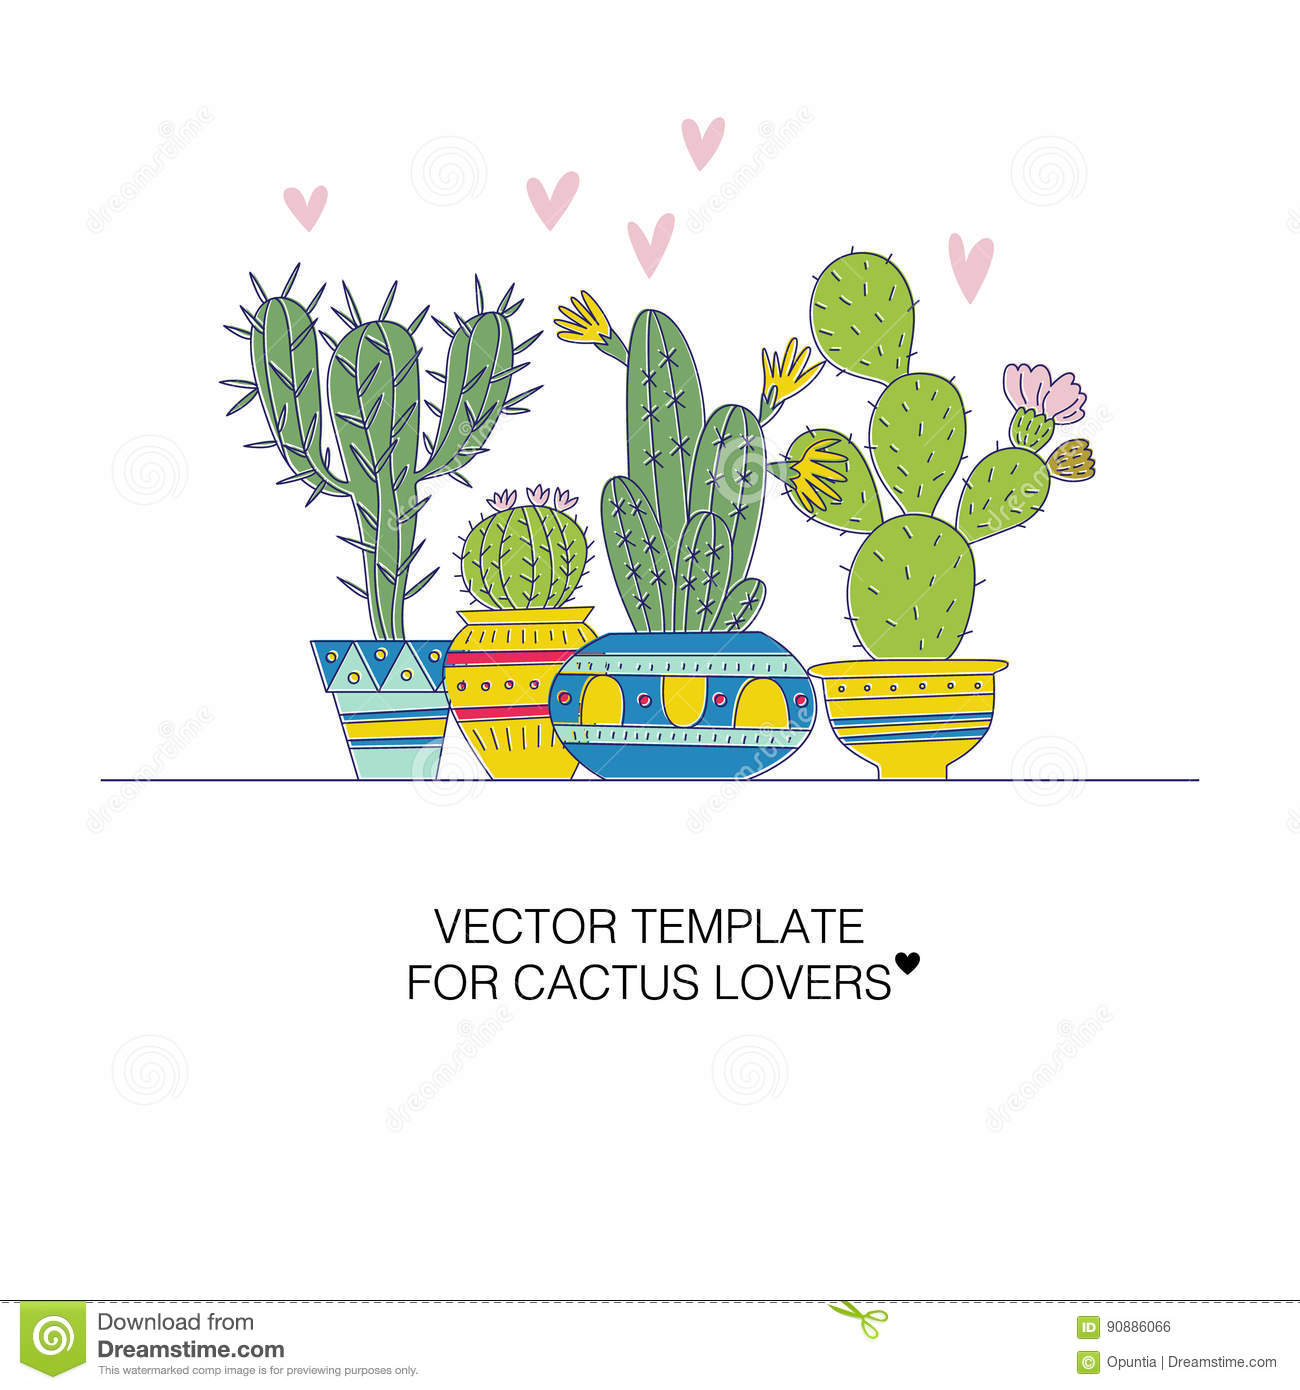 cactus templates stock vector illustration of botany 90886066